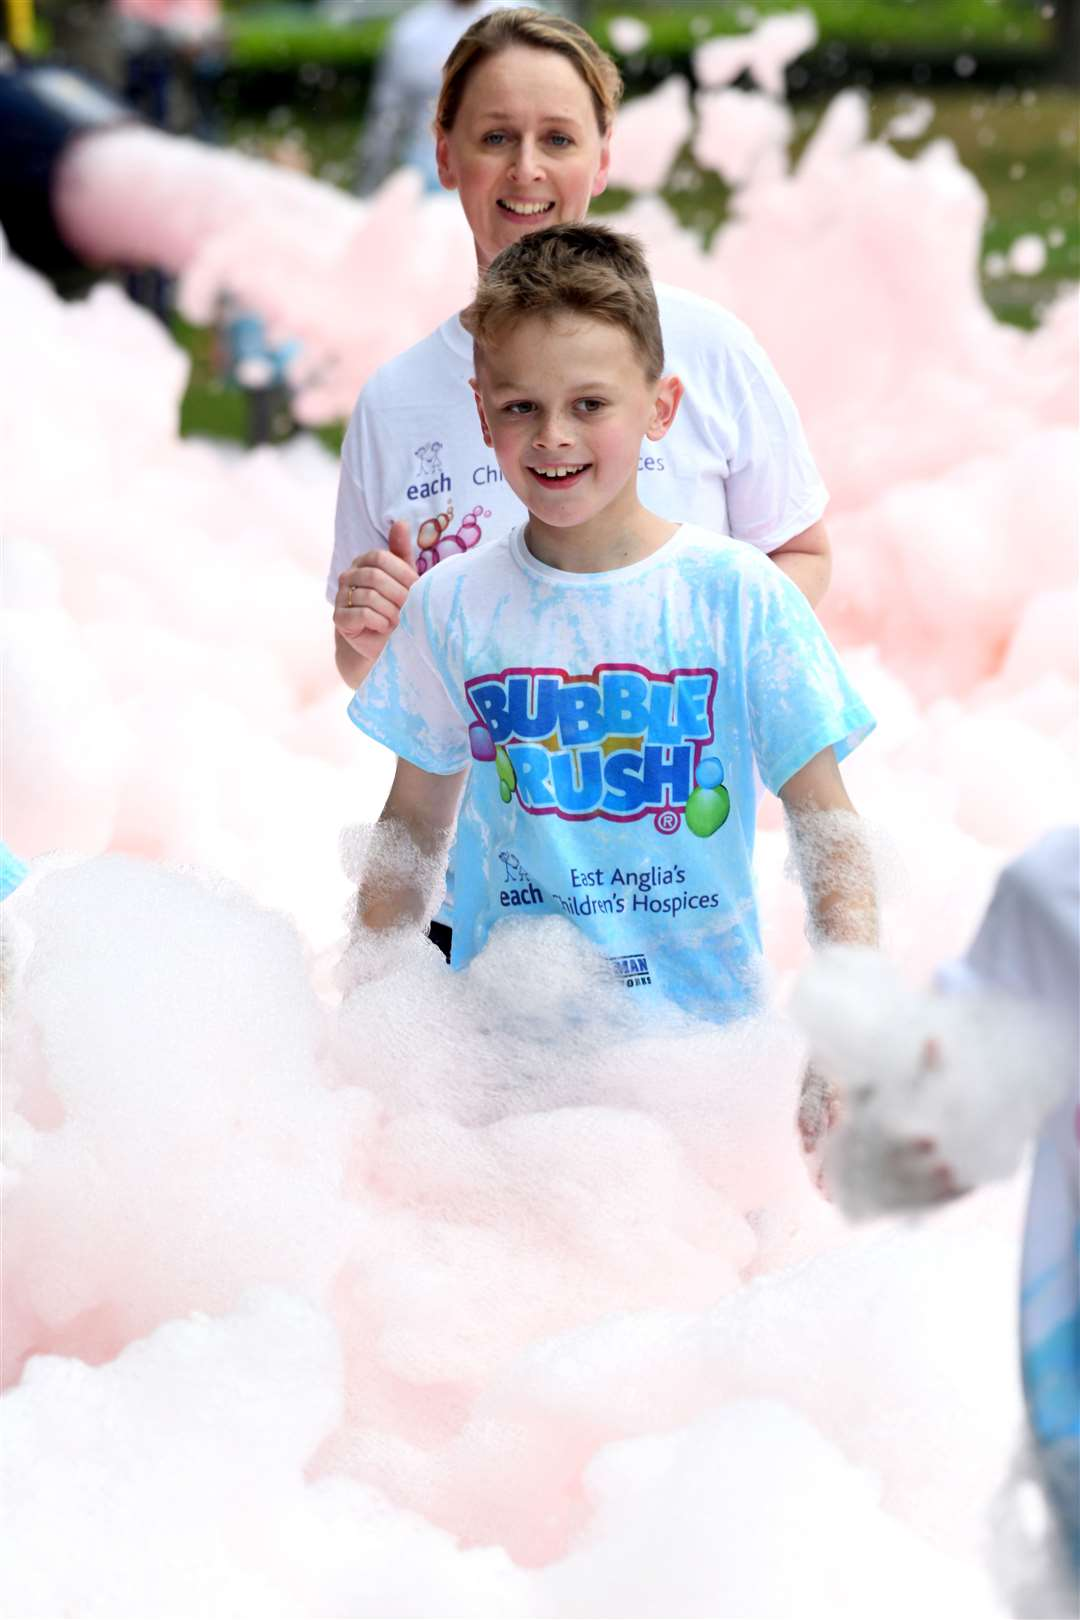 Bubble Rush at The Walks in Kings Lynn. MLNF-21AF09594